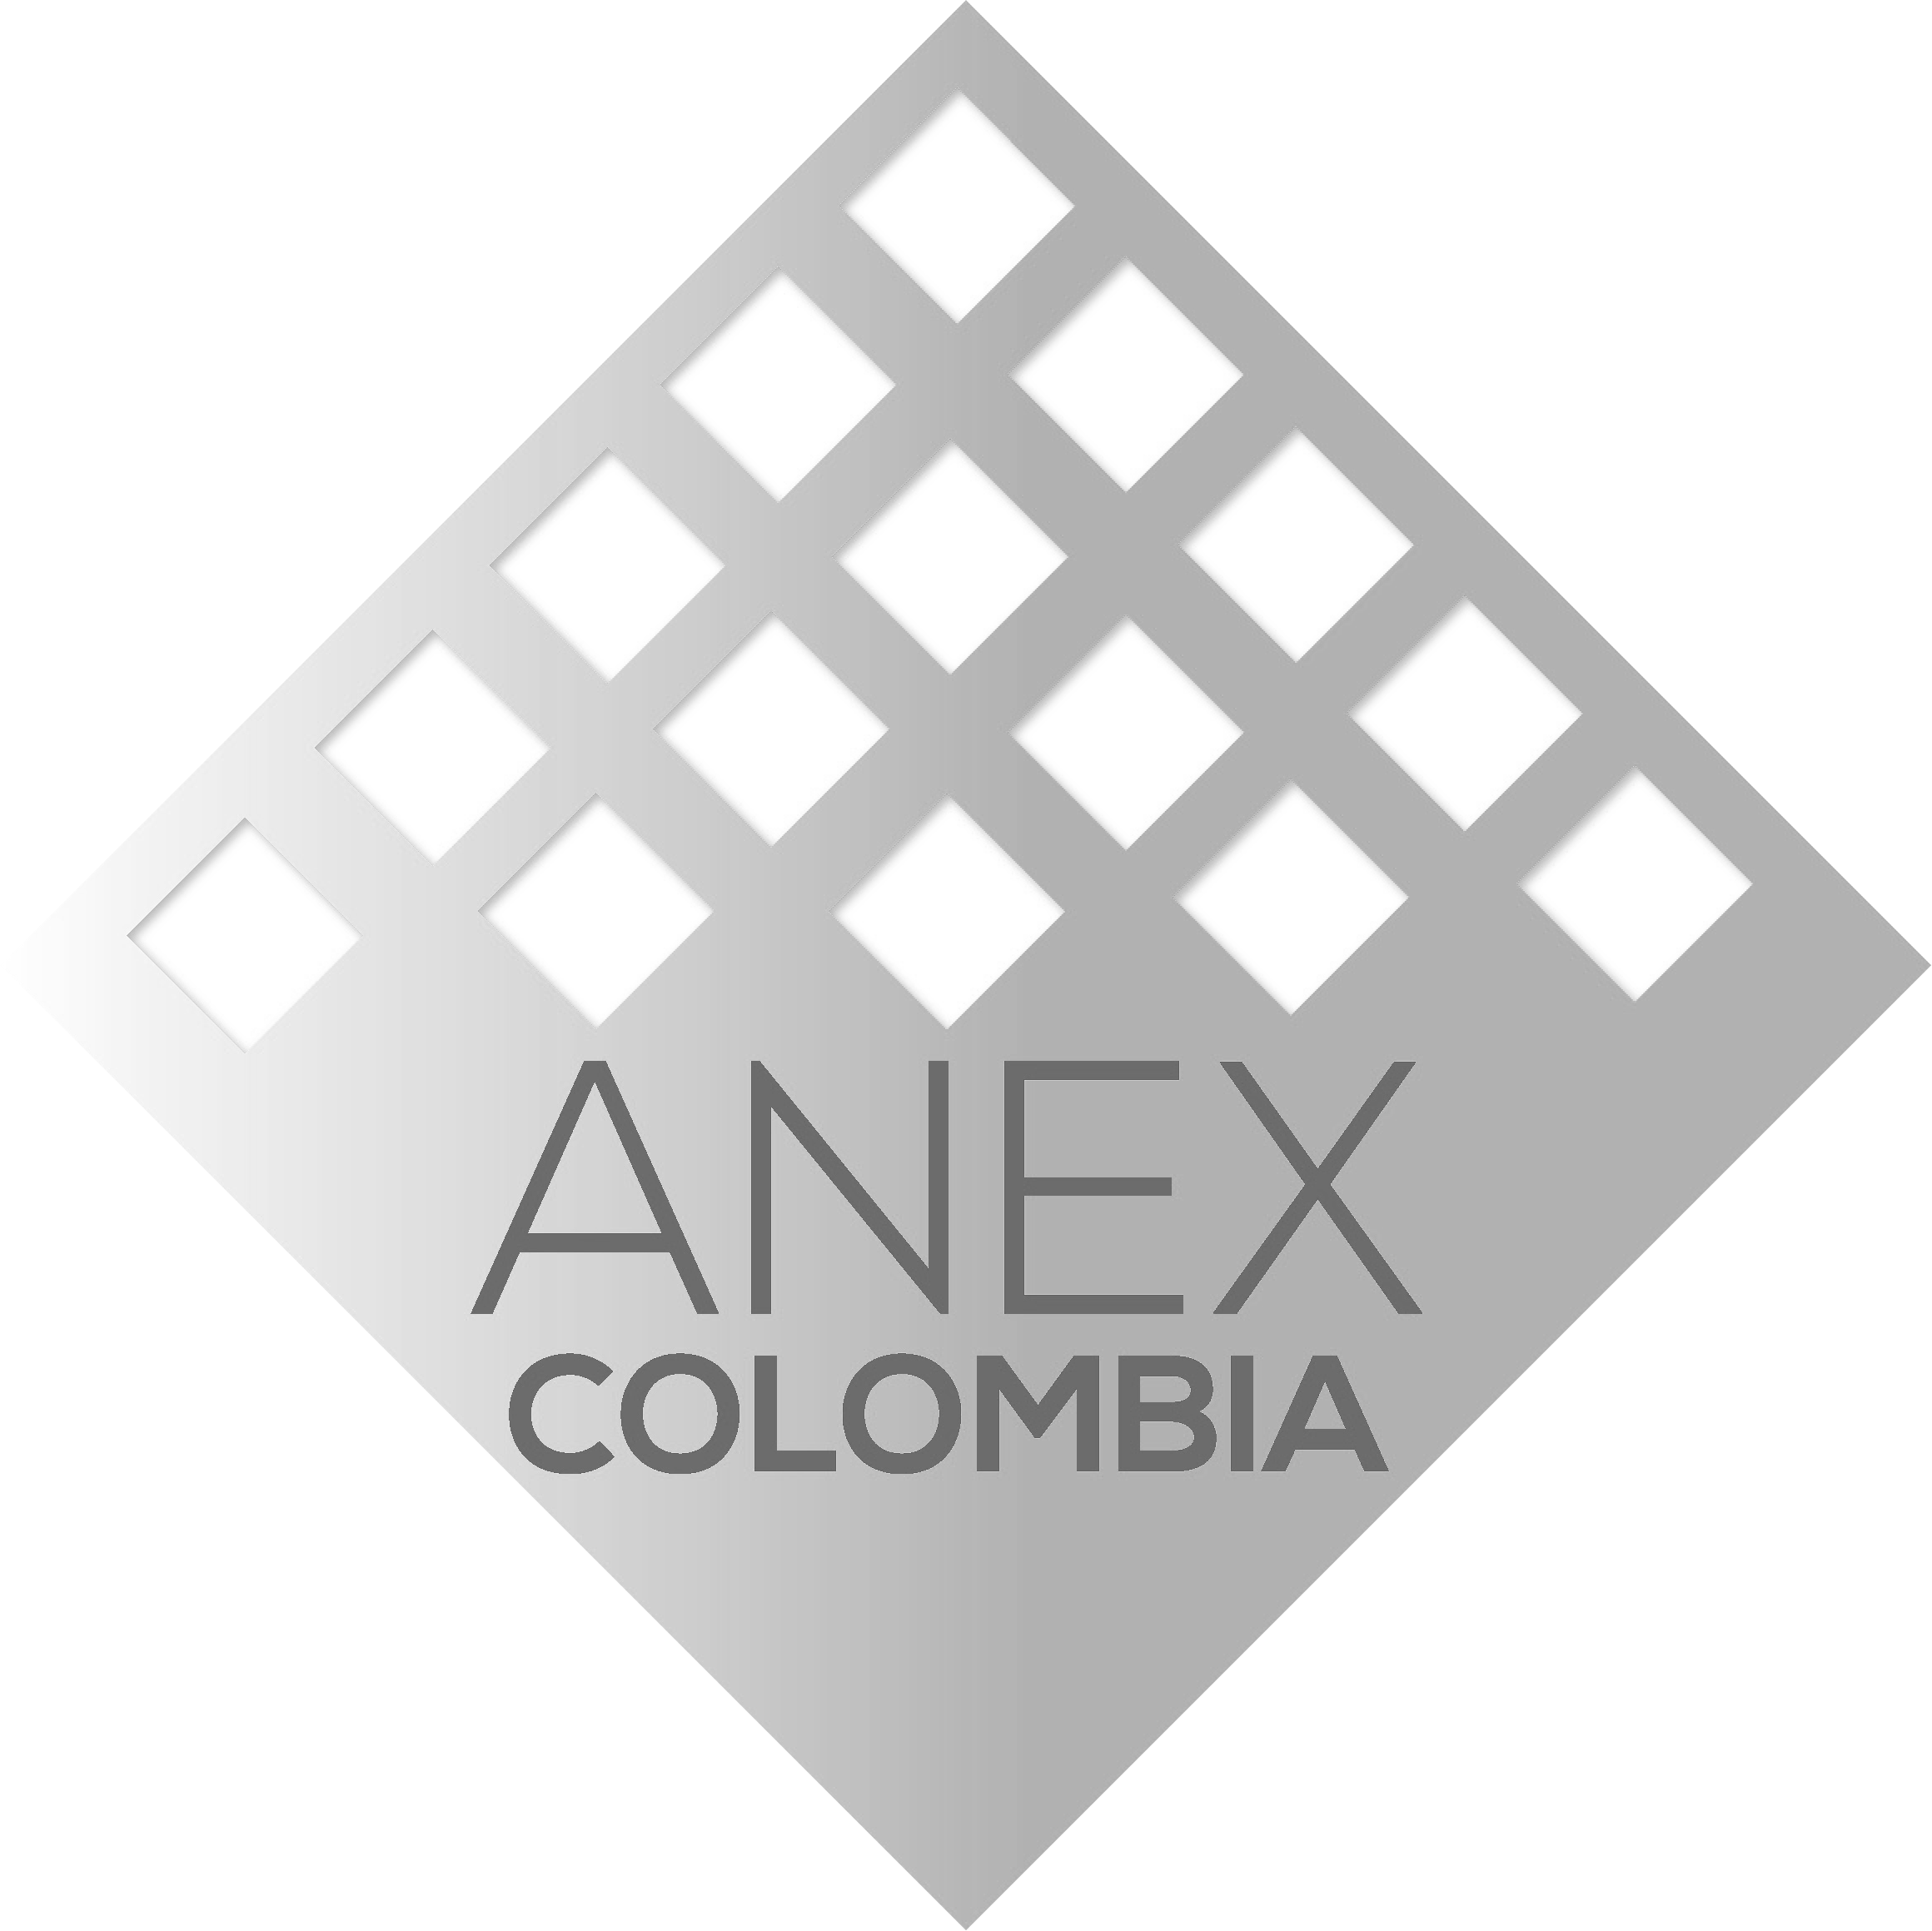 ANEX+Colombia